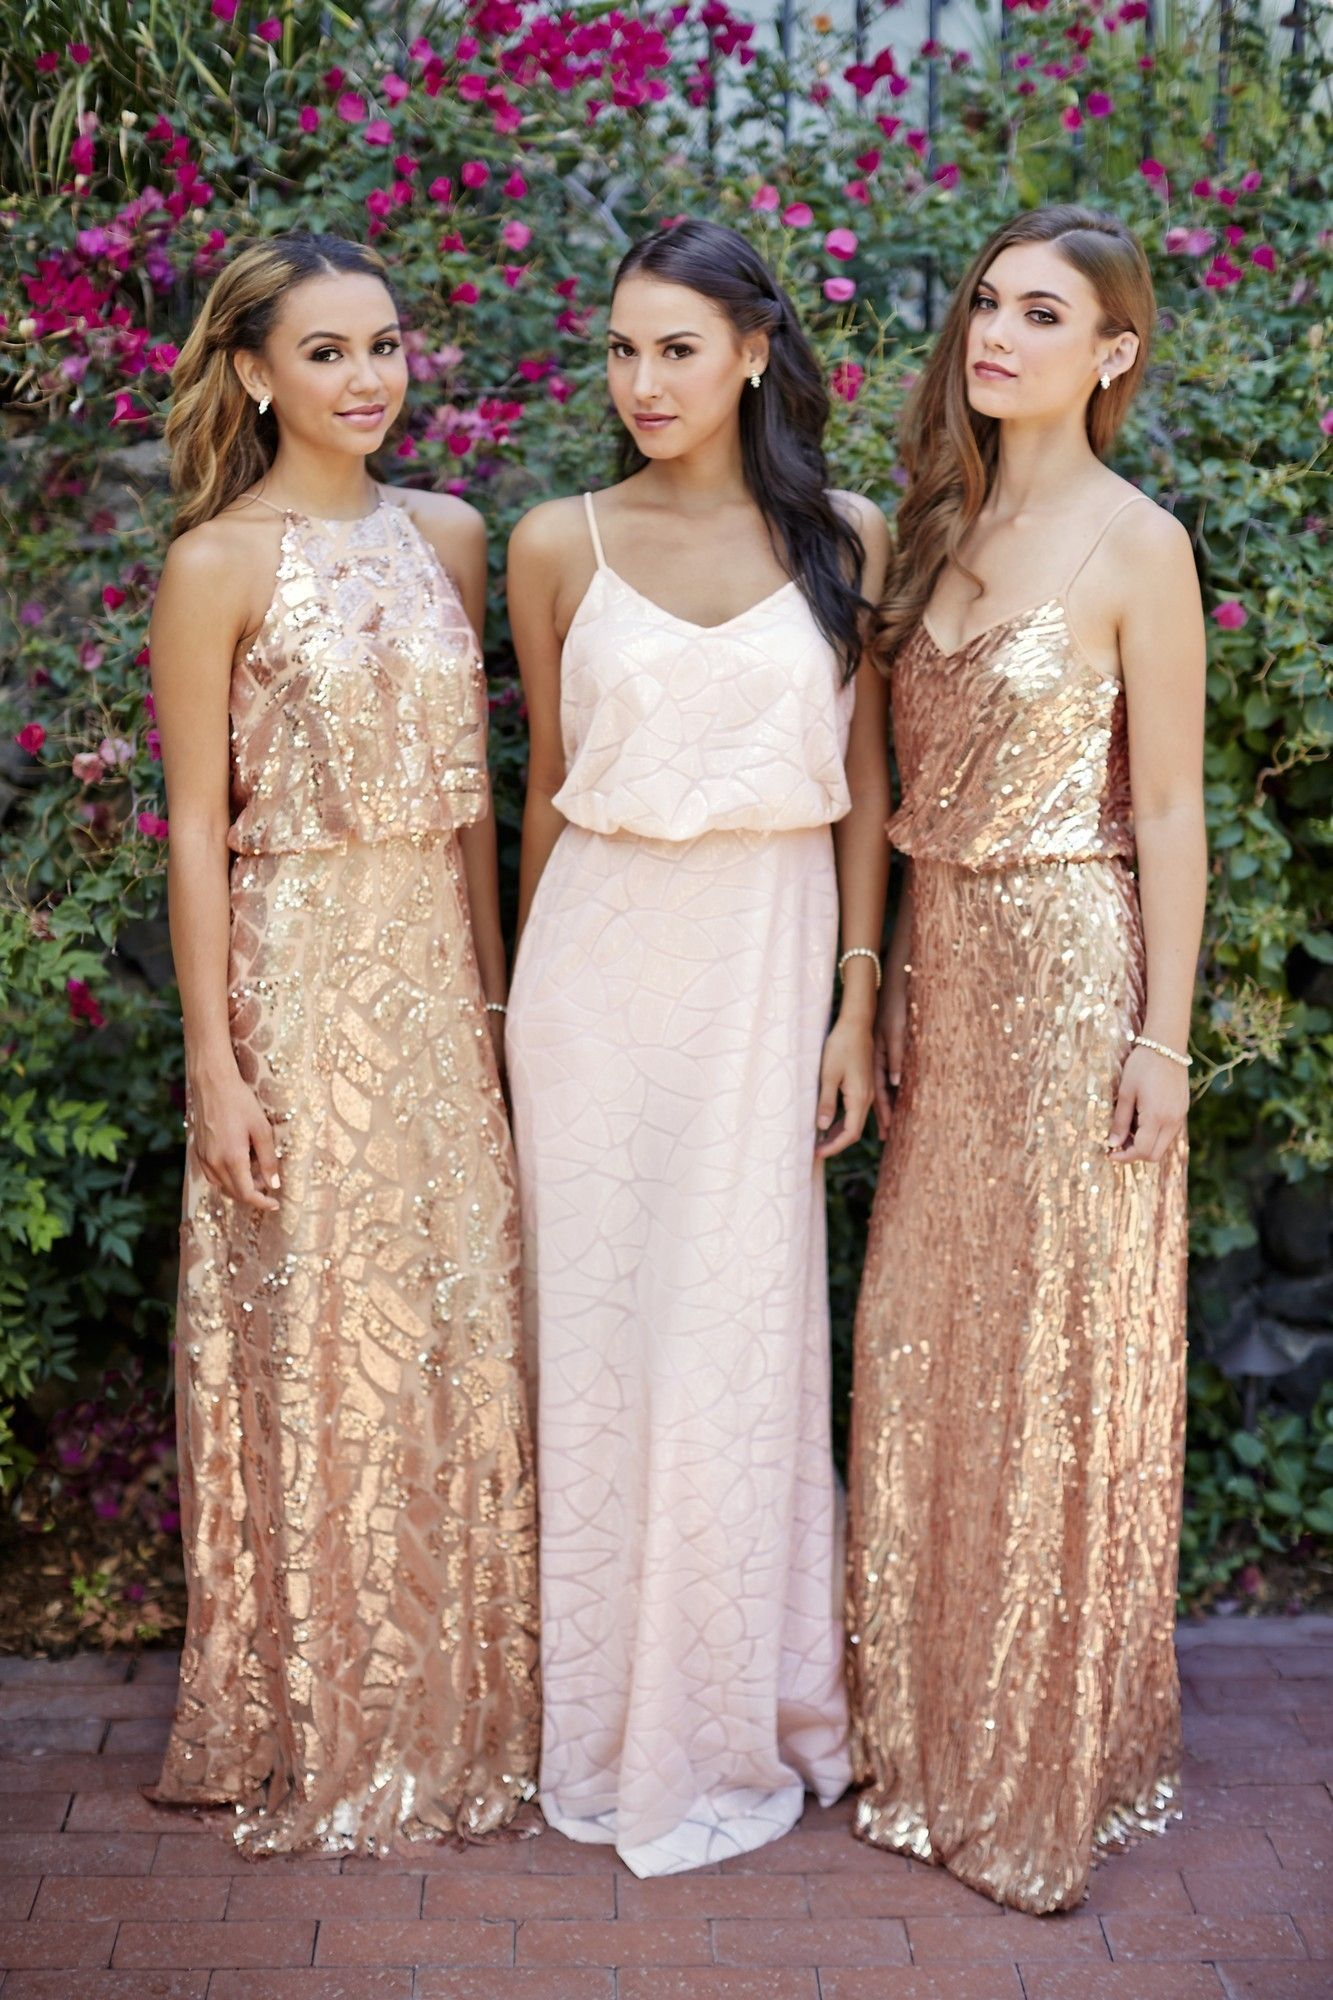 dfdd569c2fd Let your bridesmaids sparkle and shine! Blush and rose gold sequin ...